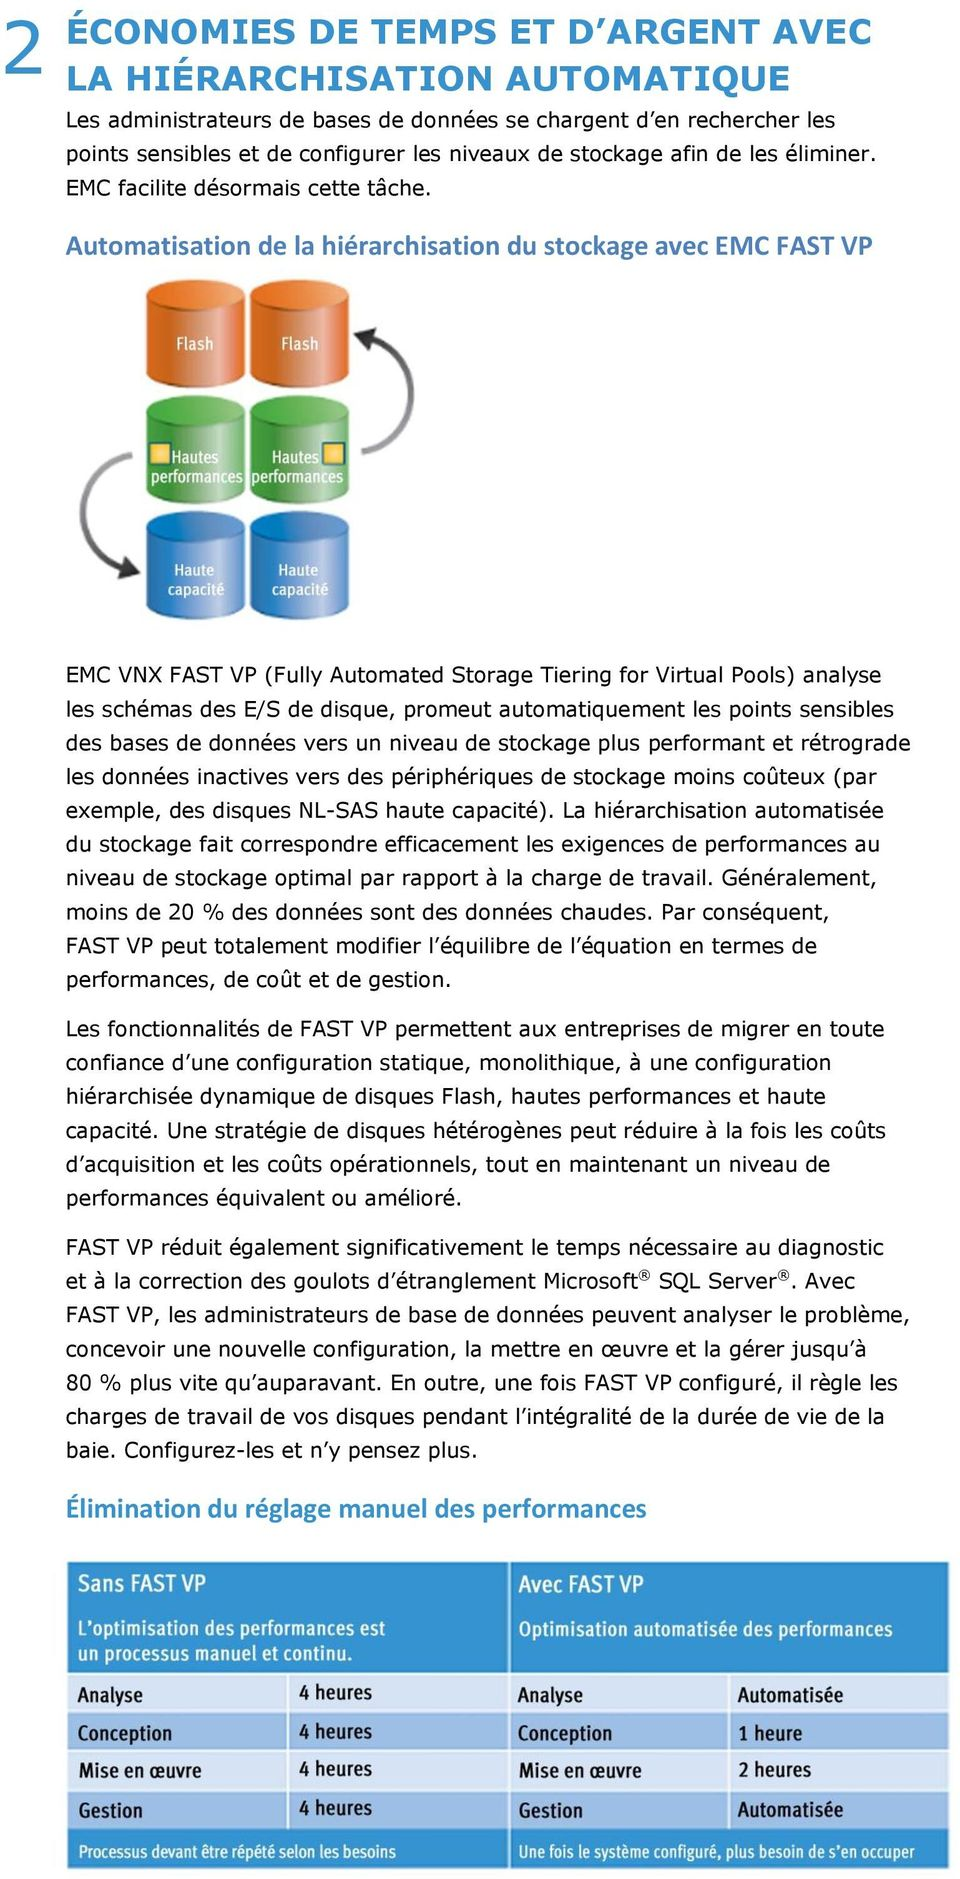 Automatisation de la hiérarchisation du stockage avec EMC FAST VP EMC VNX FAST VP (Fully Automated Storage Tiering for Virtual Pools) analyse les schémas des E/S de disque, promeut automatiquement